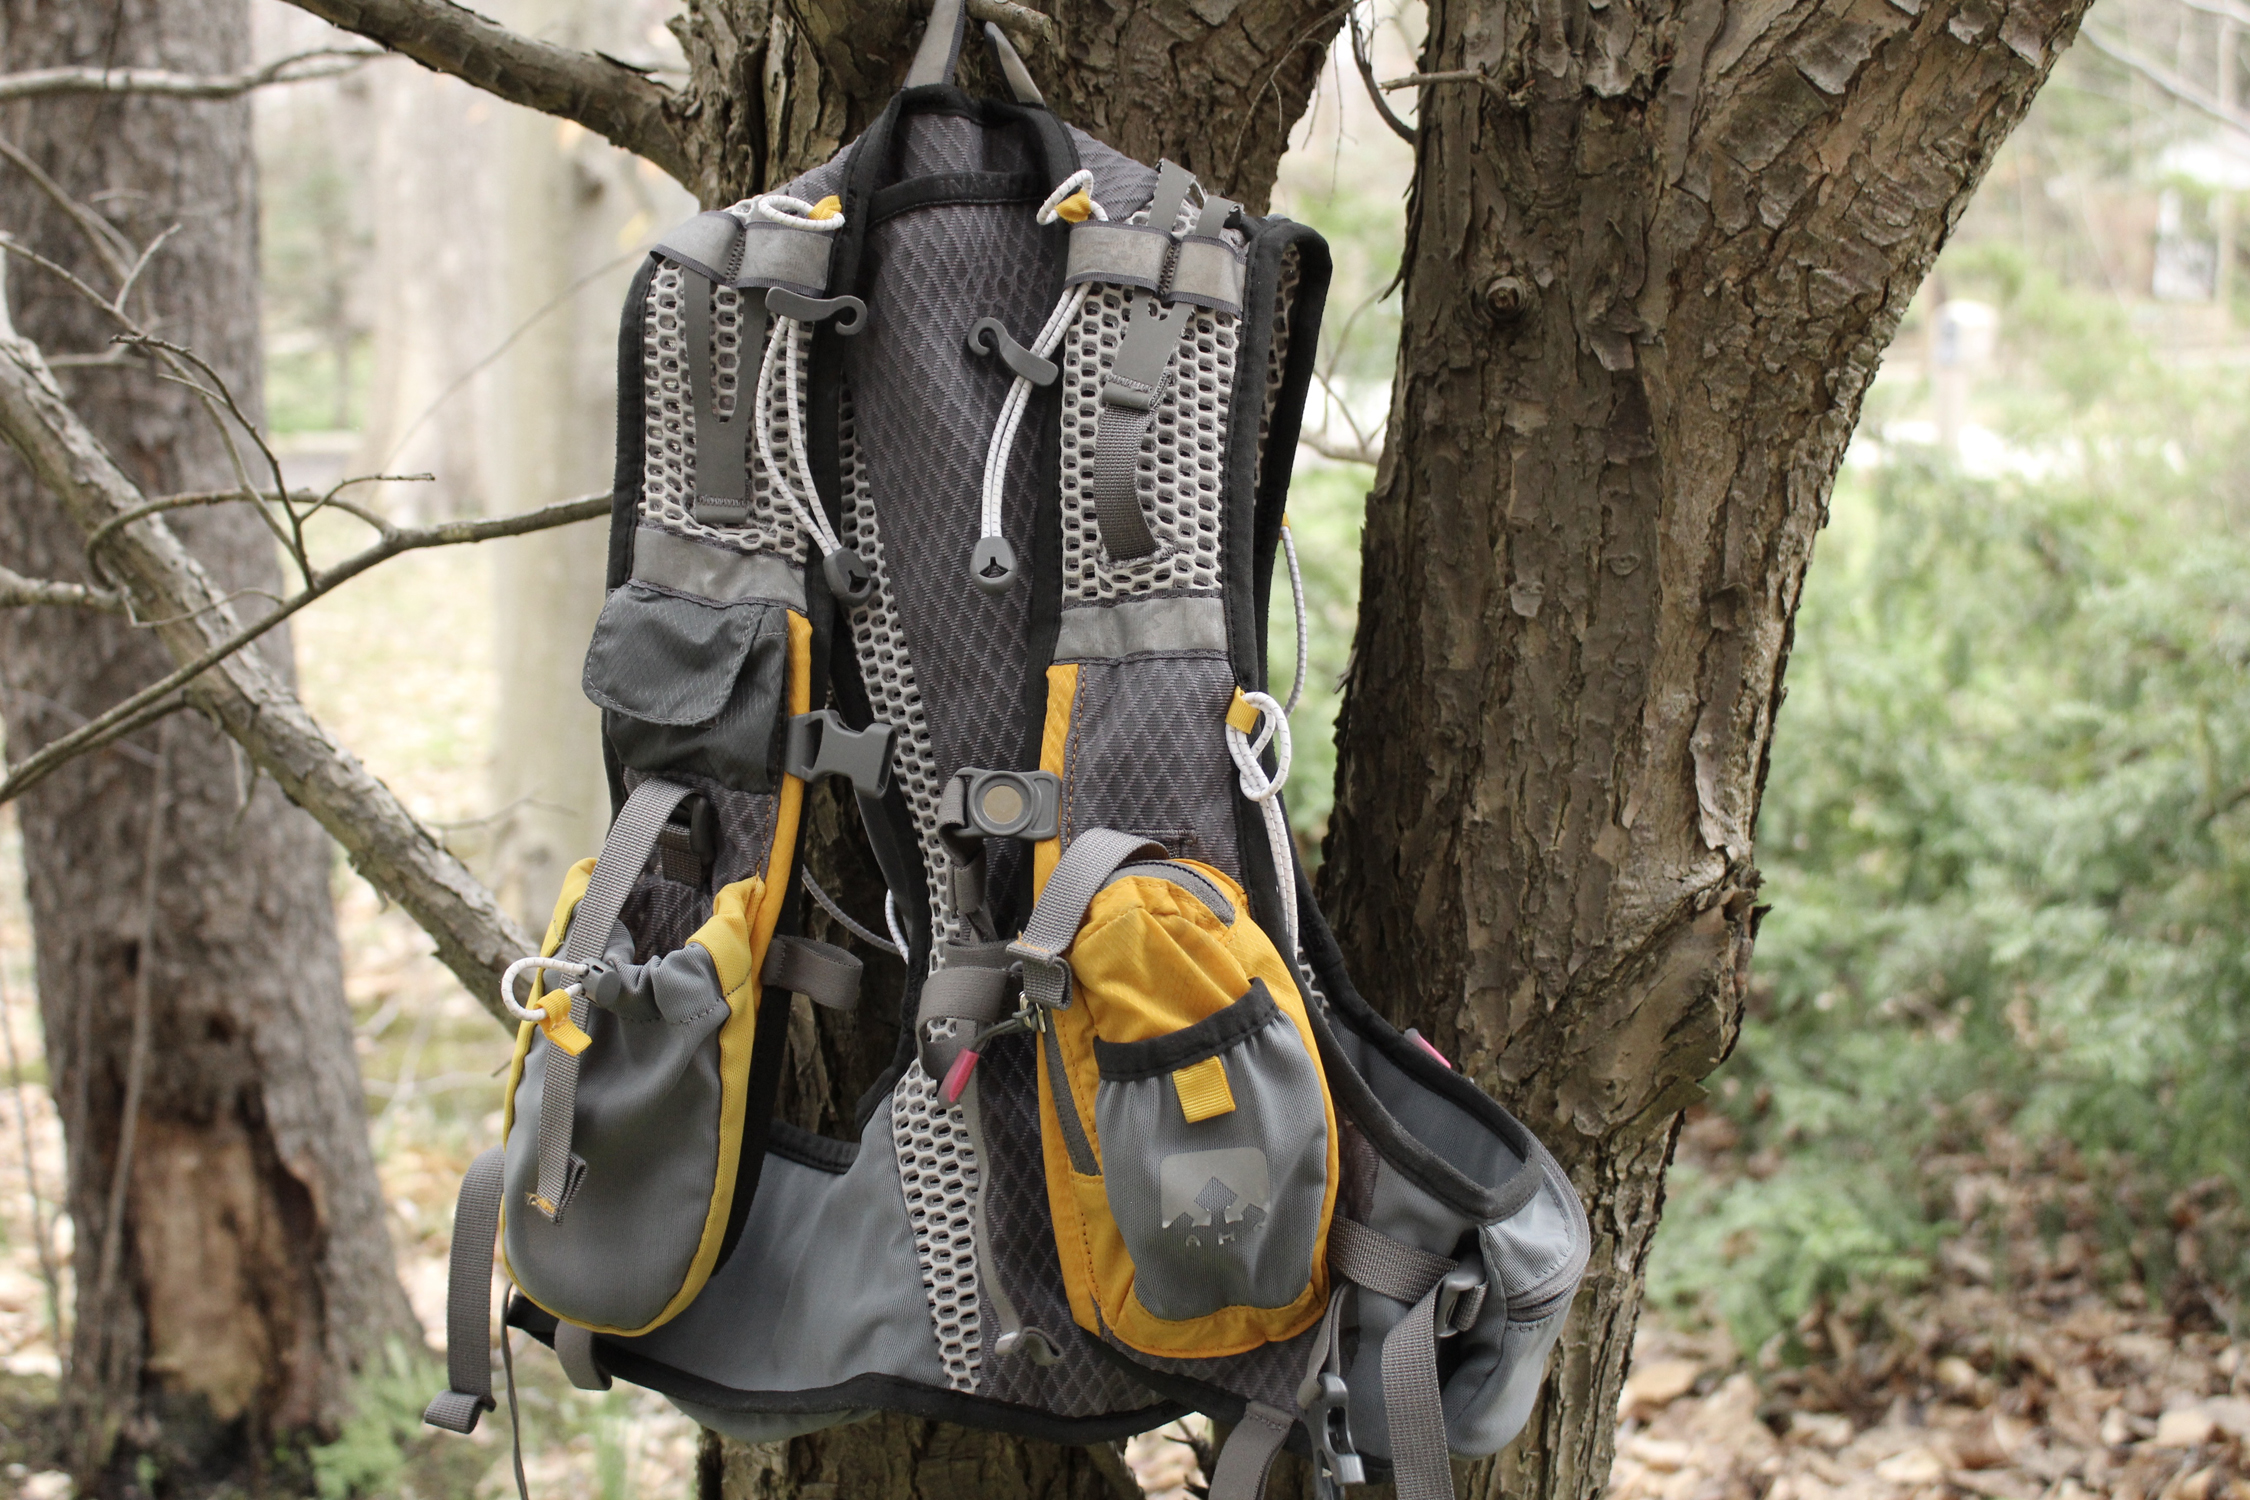 Discussion and questions about hydration packs and bottles are common this time of year. Check out the runner's guide to hydration packs, vests, belts, and bottles.